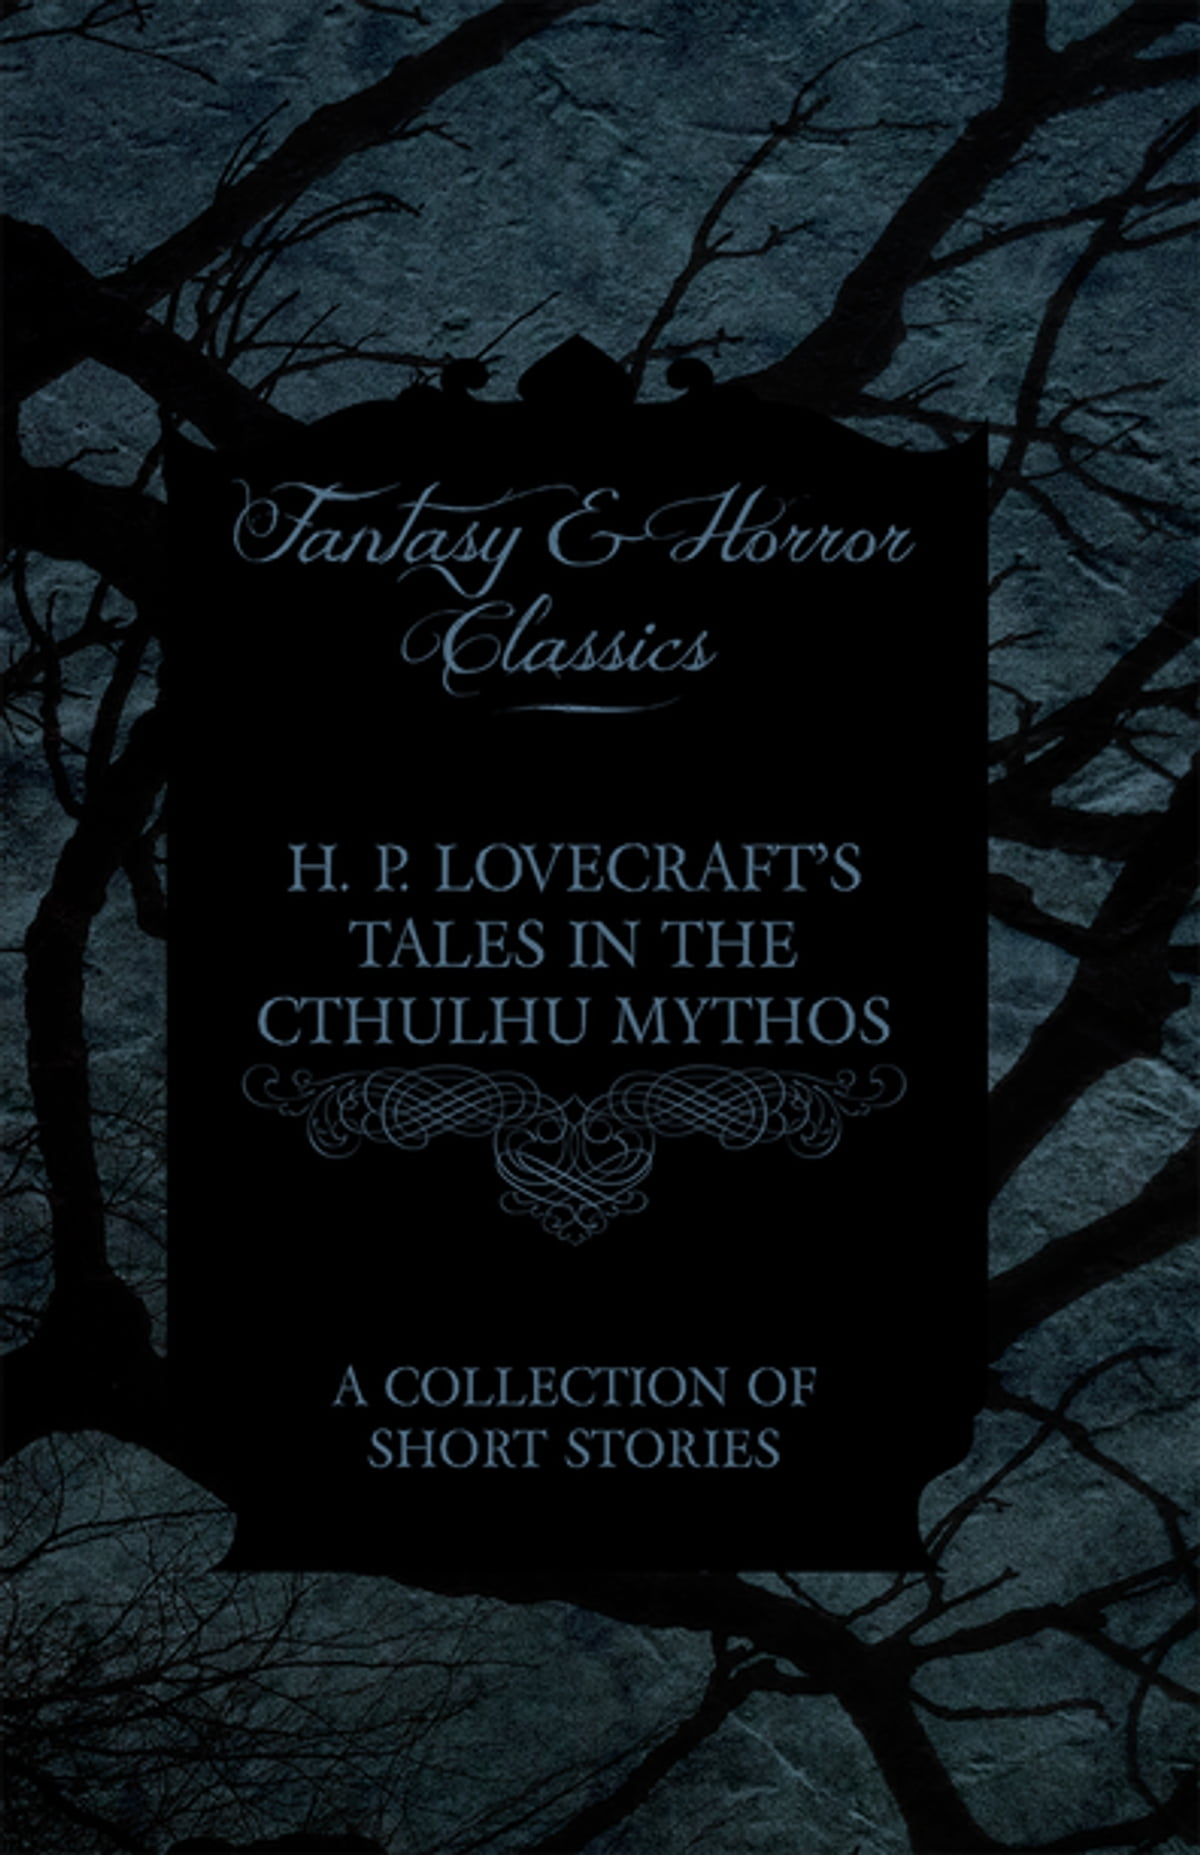 H  P  Lovecraft's Tales in the Cthulhu Mythos - A Collection of Short  Stories (Fantasy and Horror Classics) ebook by H  P  Lovecraft - Rakuten  Kobo